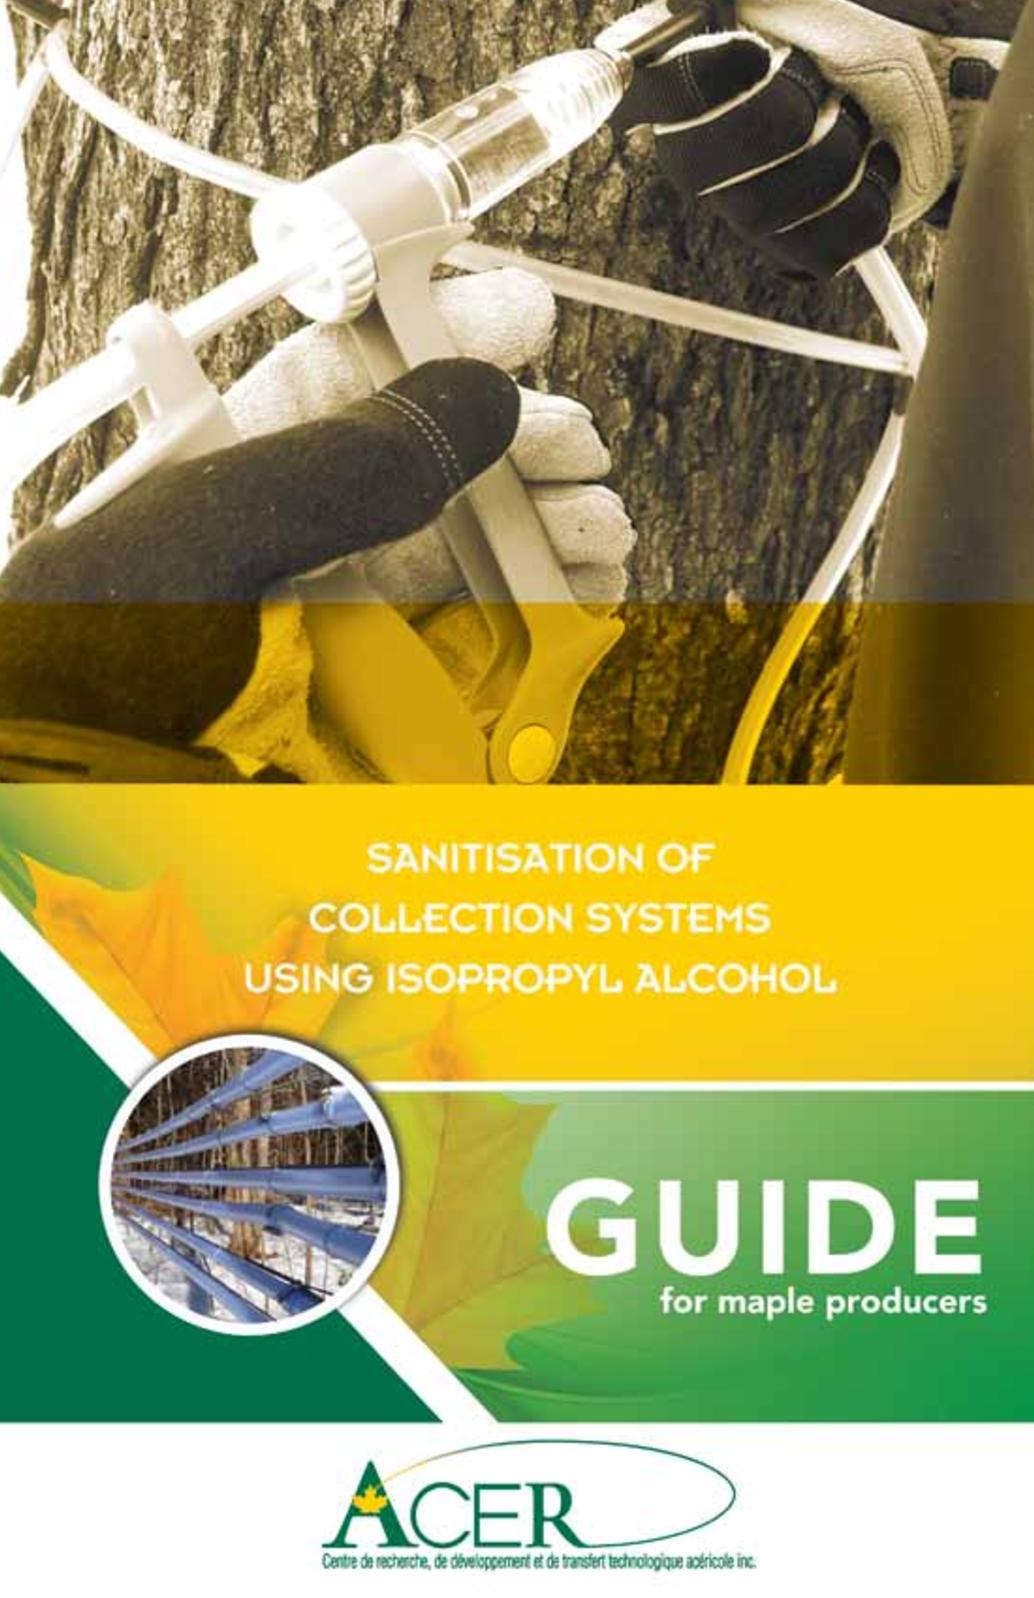 Calaméo - Sanitisation of collection systems using isopropl